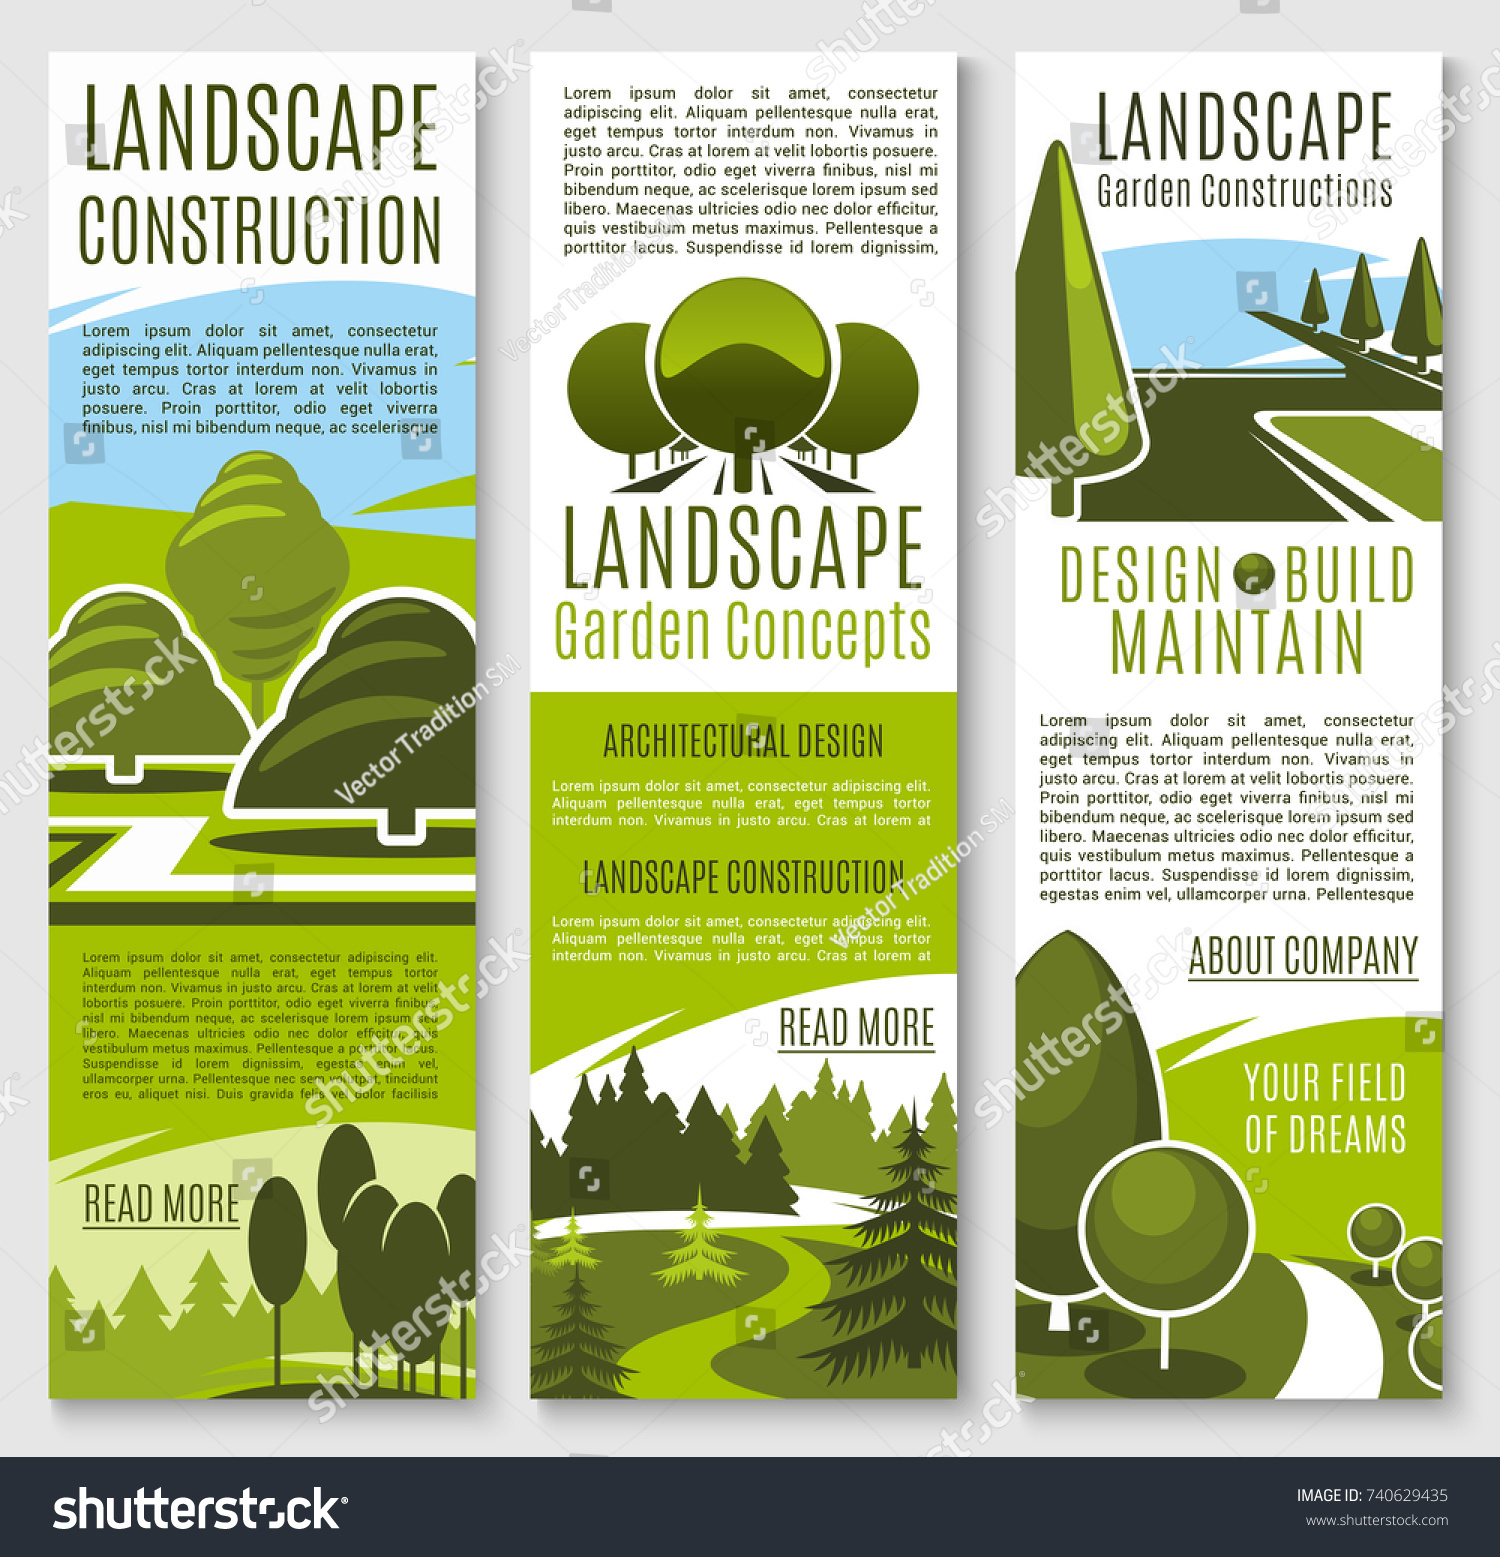 Gardening Or Landscape Construction Company Banners For Urban Horticulture  And Garden Planting Association. Green Parks